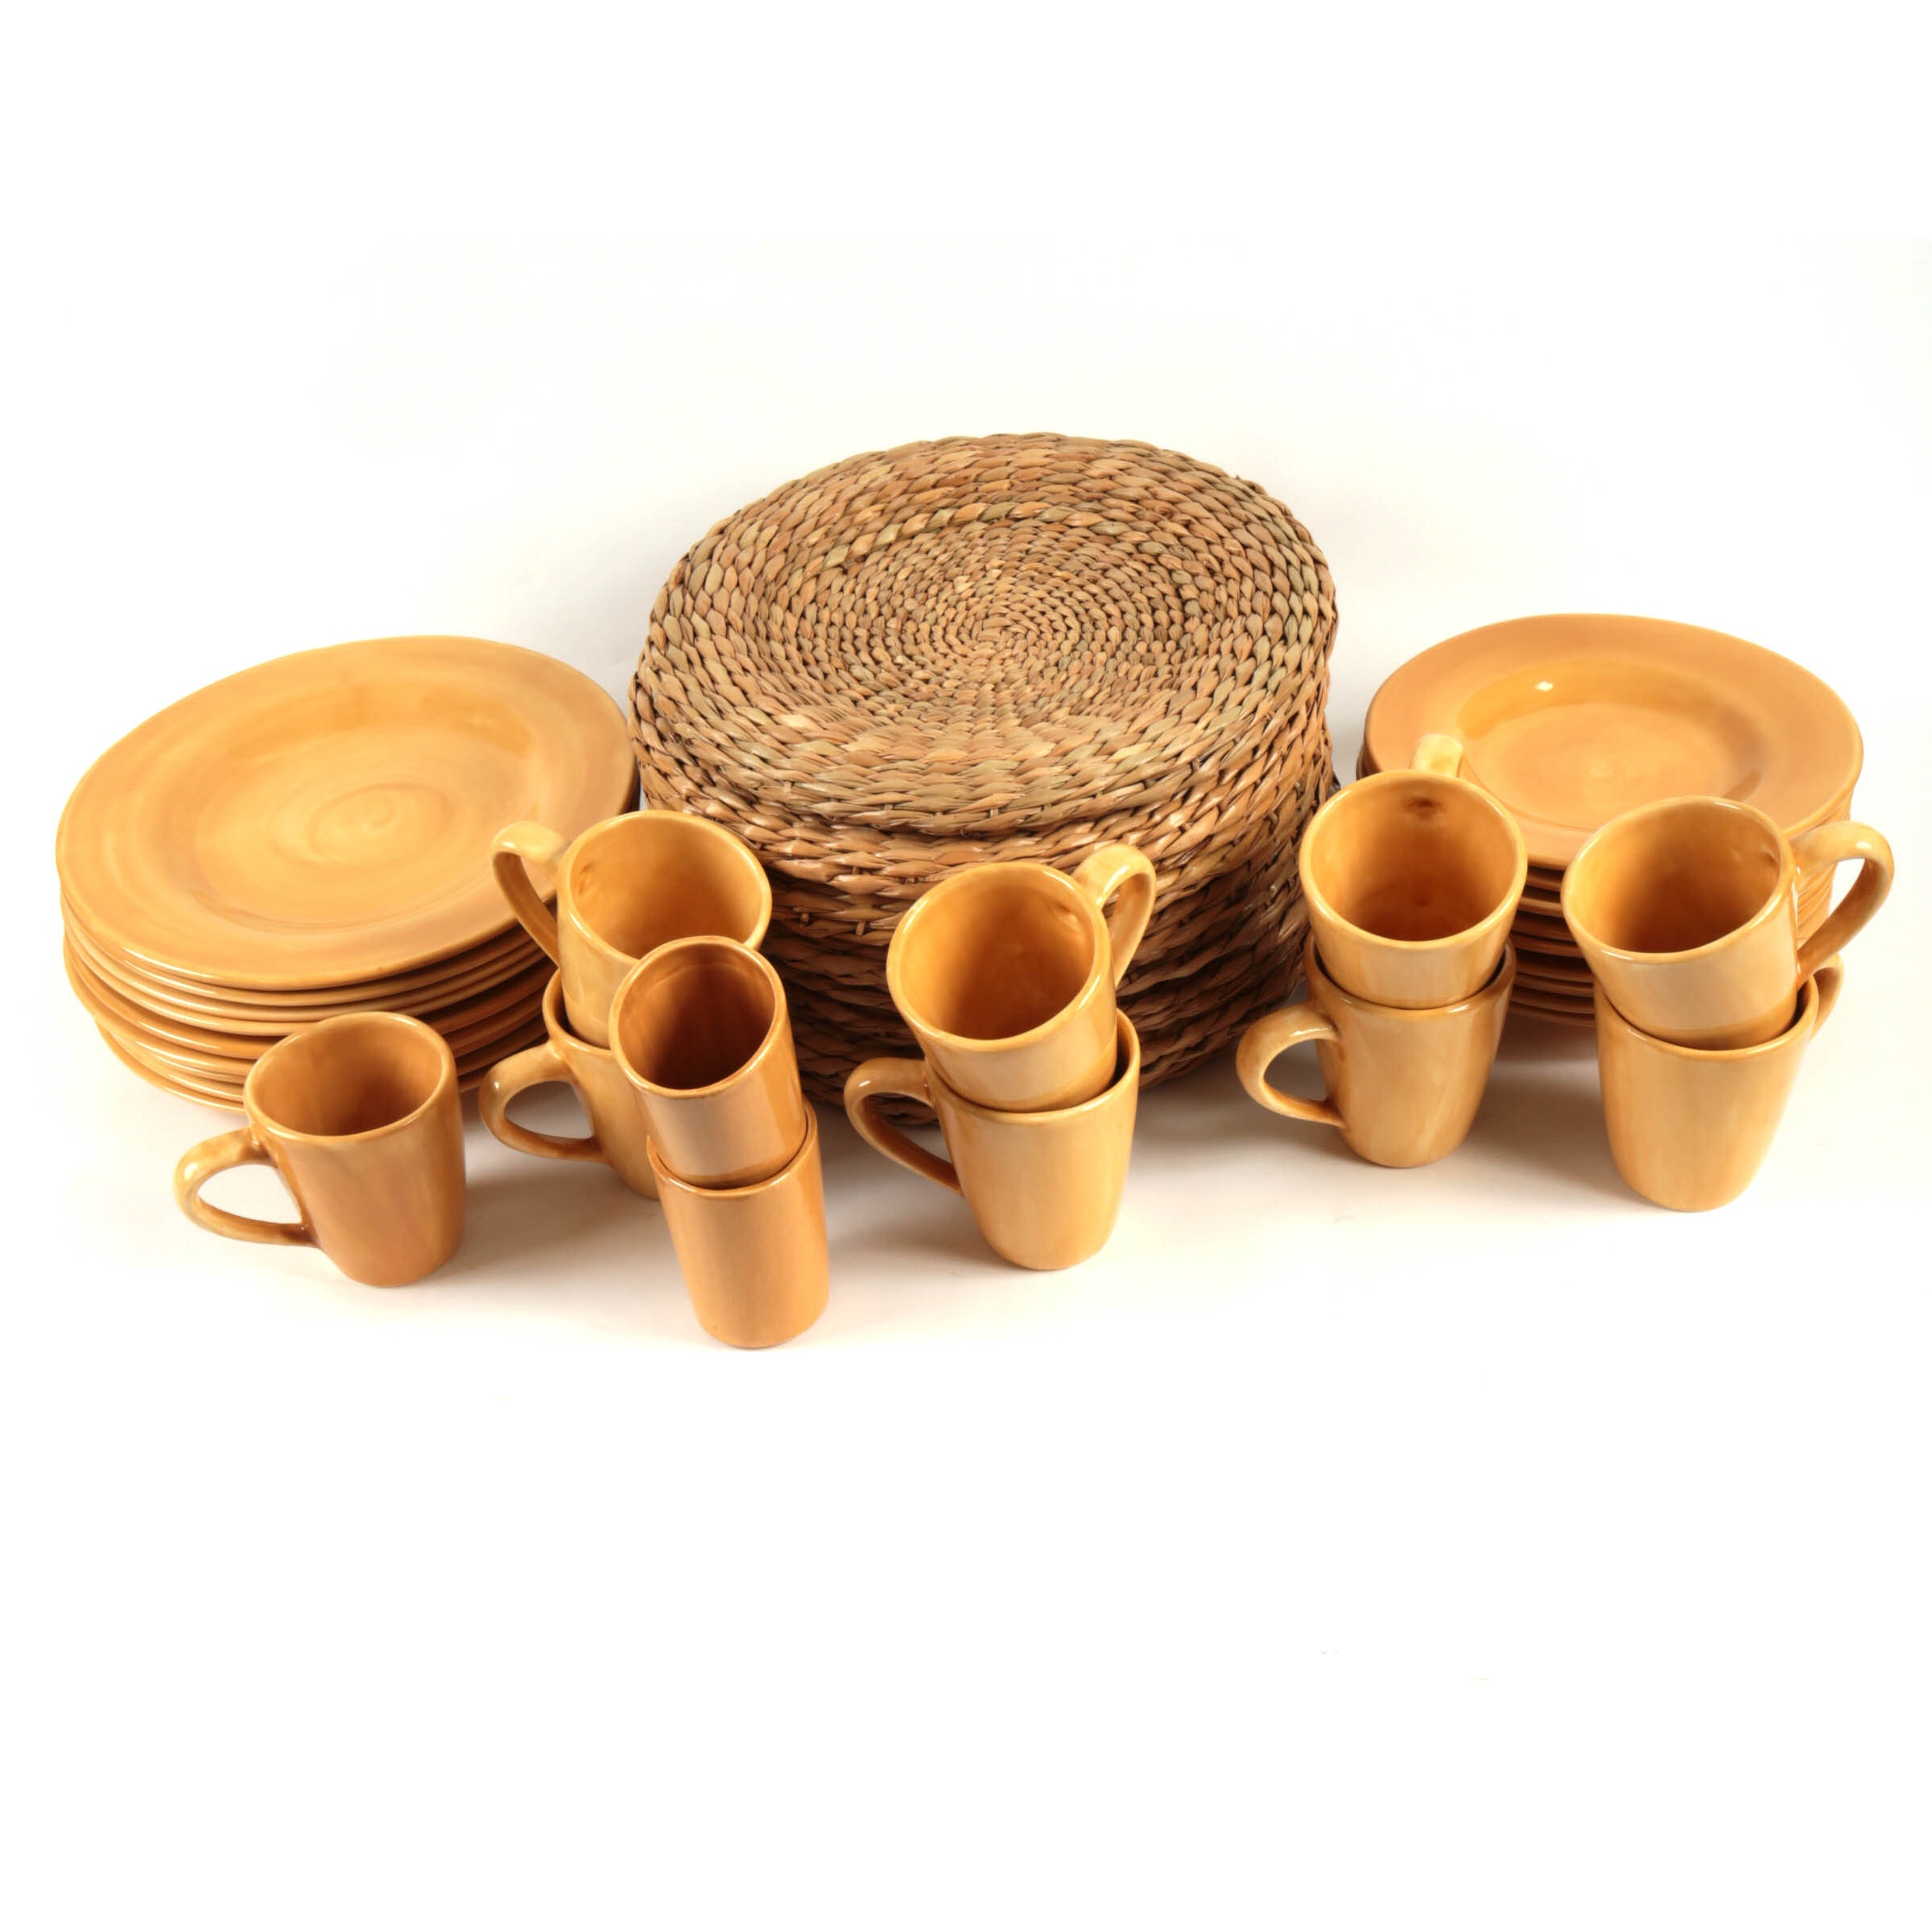 Pottery Barn  Sausalito  Mexican Dinnerware and Placemats ...  sc 1 st  EBTH.com & Pottery Barn